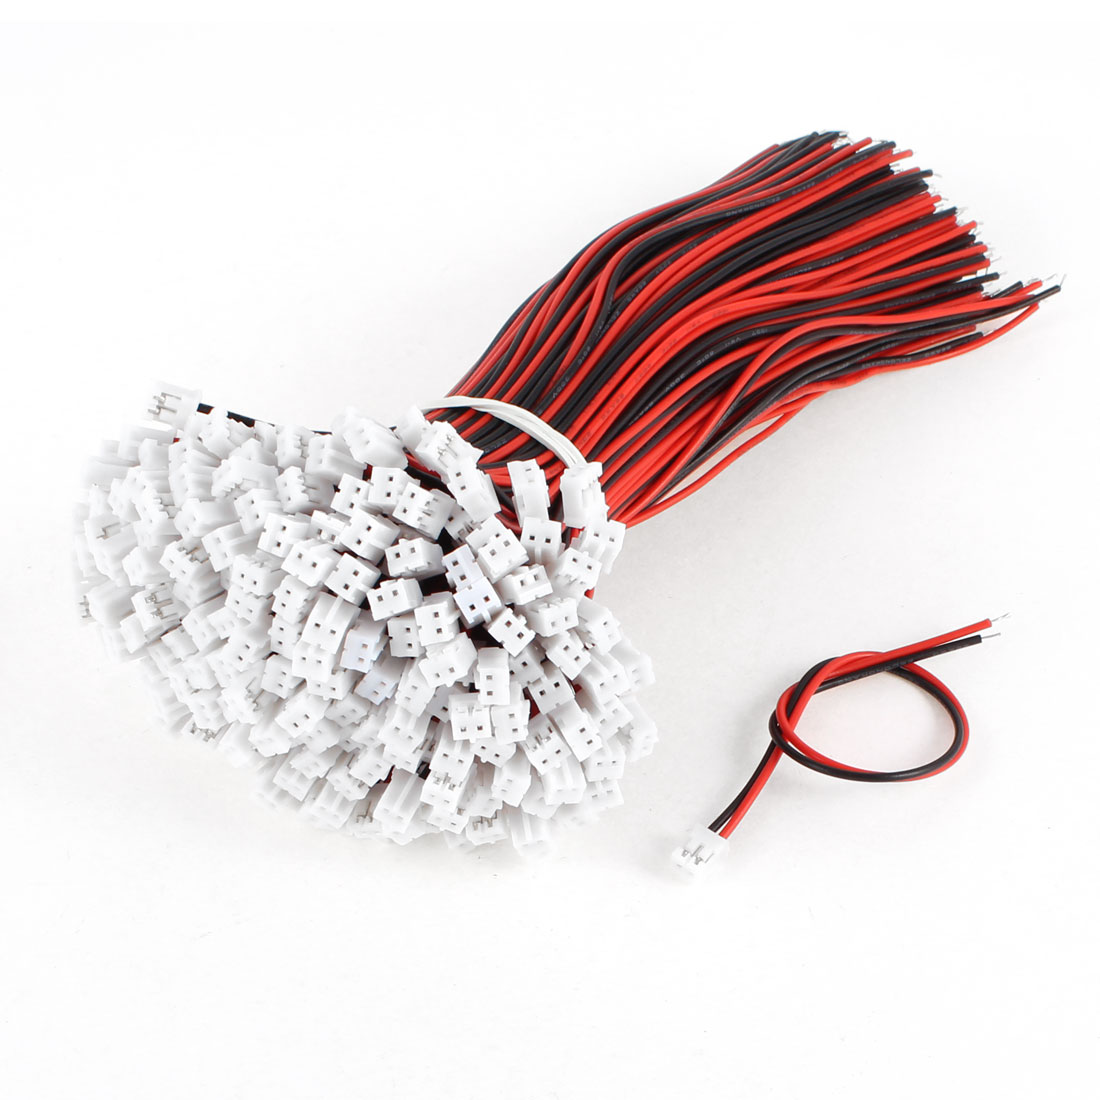 200 Pcs Single End 2 Terminal Power Supply Cable for CCTV Camera LED Board